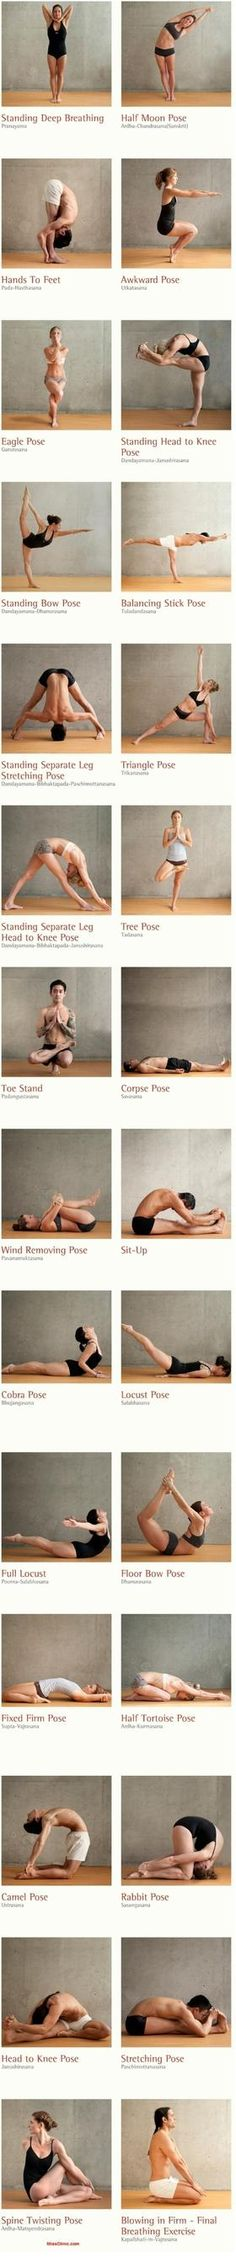 26 Bikram yoga poses that invigorate by stimulating the organs, glands, and nerves.